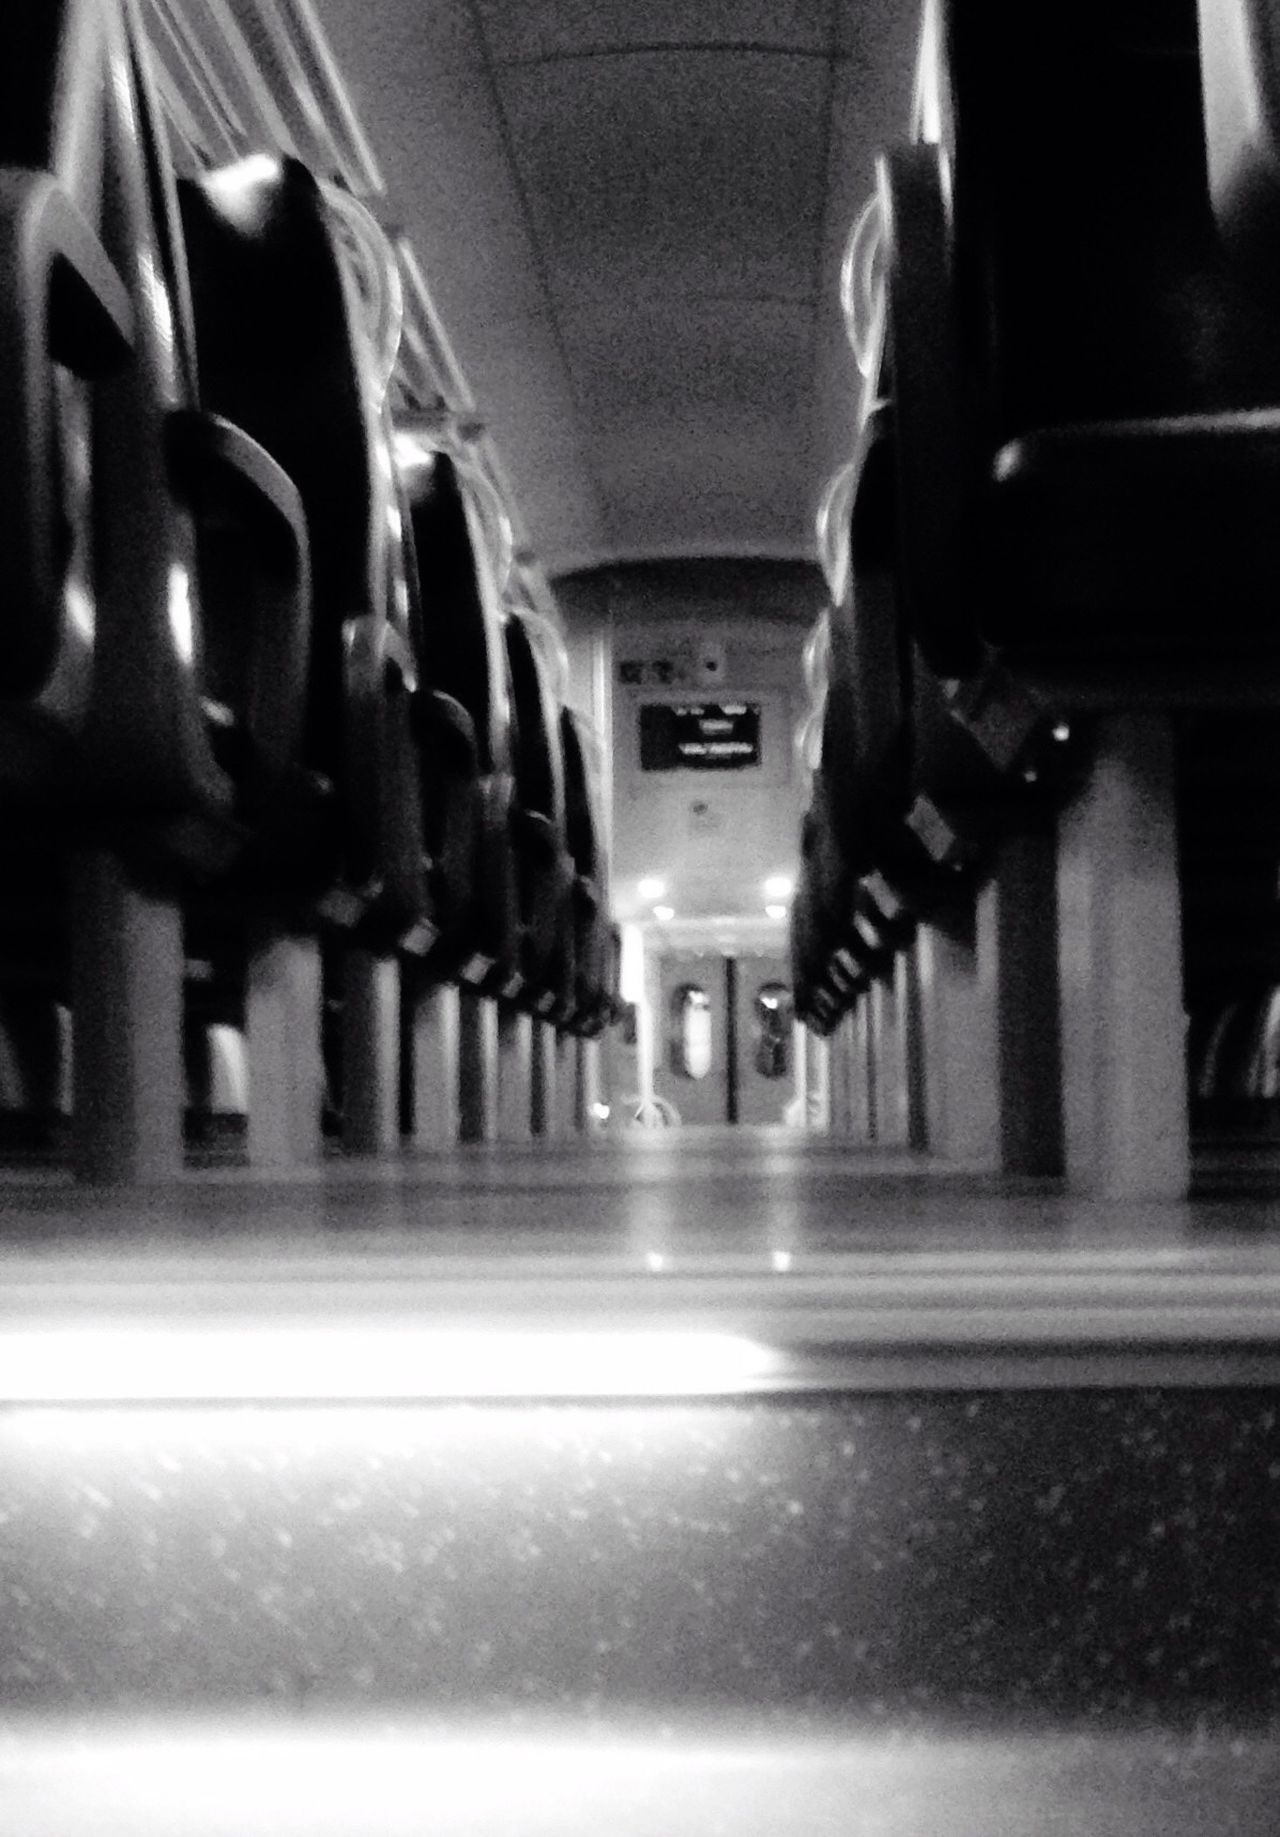 Transportation Illuminated Public Transportation Vehicle Interior Lighting Equipment Rail Transportation Monochrome Photography Eyeemphotography No People From My Point Of View Young Adult Adults Only Adult Indoors  Light And Shadow Black And White Blackandwhite Photography EyeEm Best Shots Momochrome Photography Blackandwhite